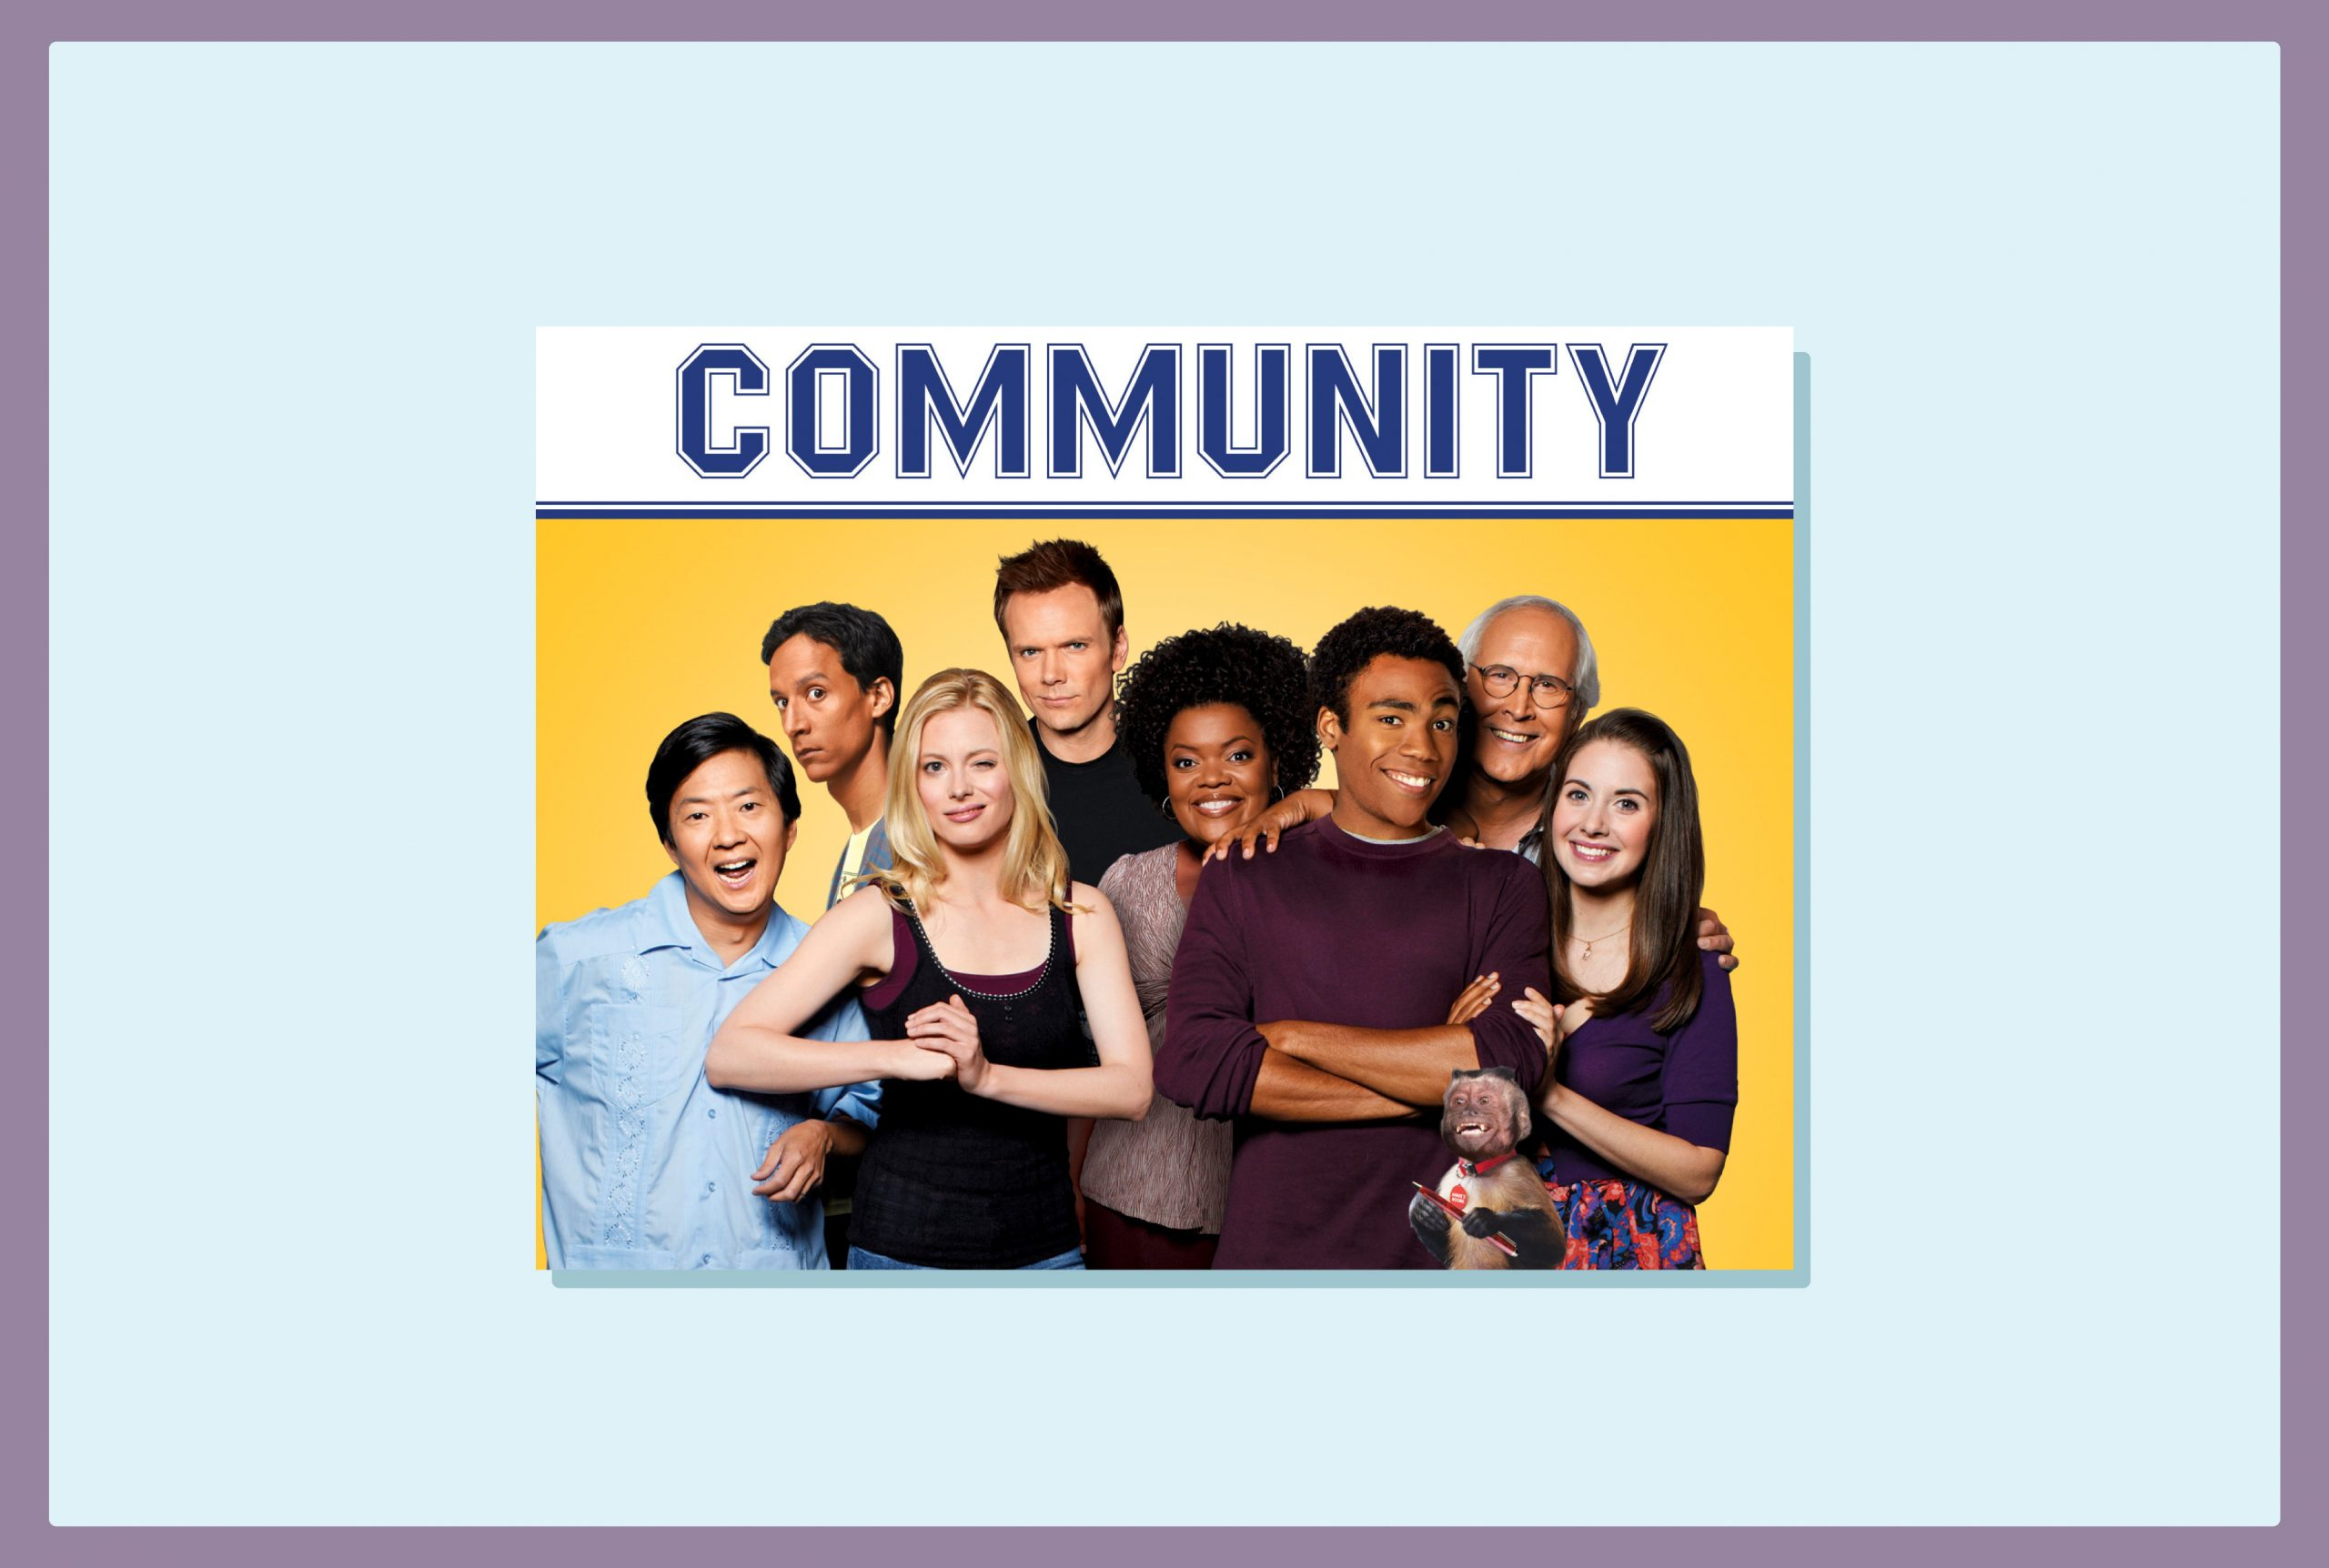 A group of 8 friends - one black woman, one black man, one asian man, one brown man from the Middle East, two white women and two white men - along with a monkey pose for a photo under the title 'Community'